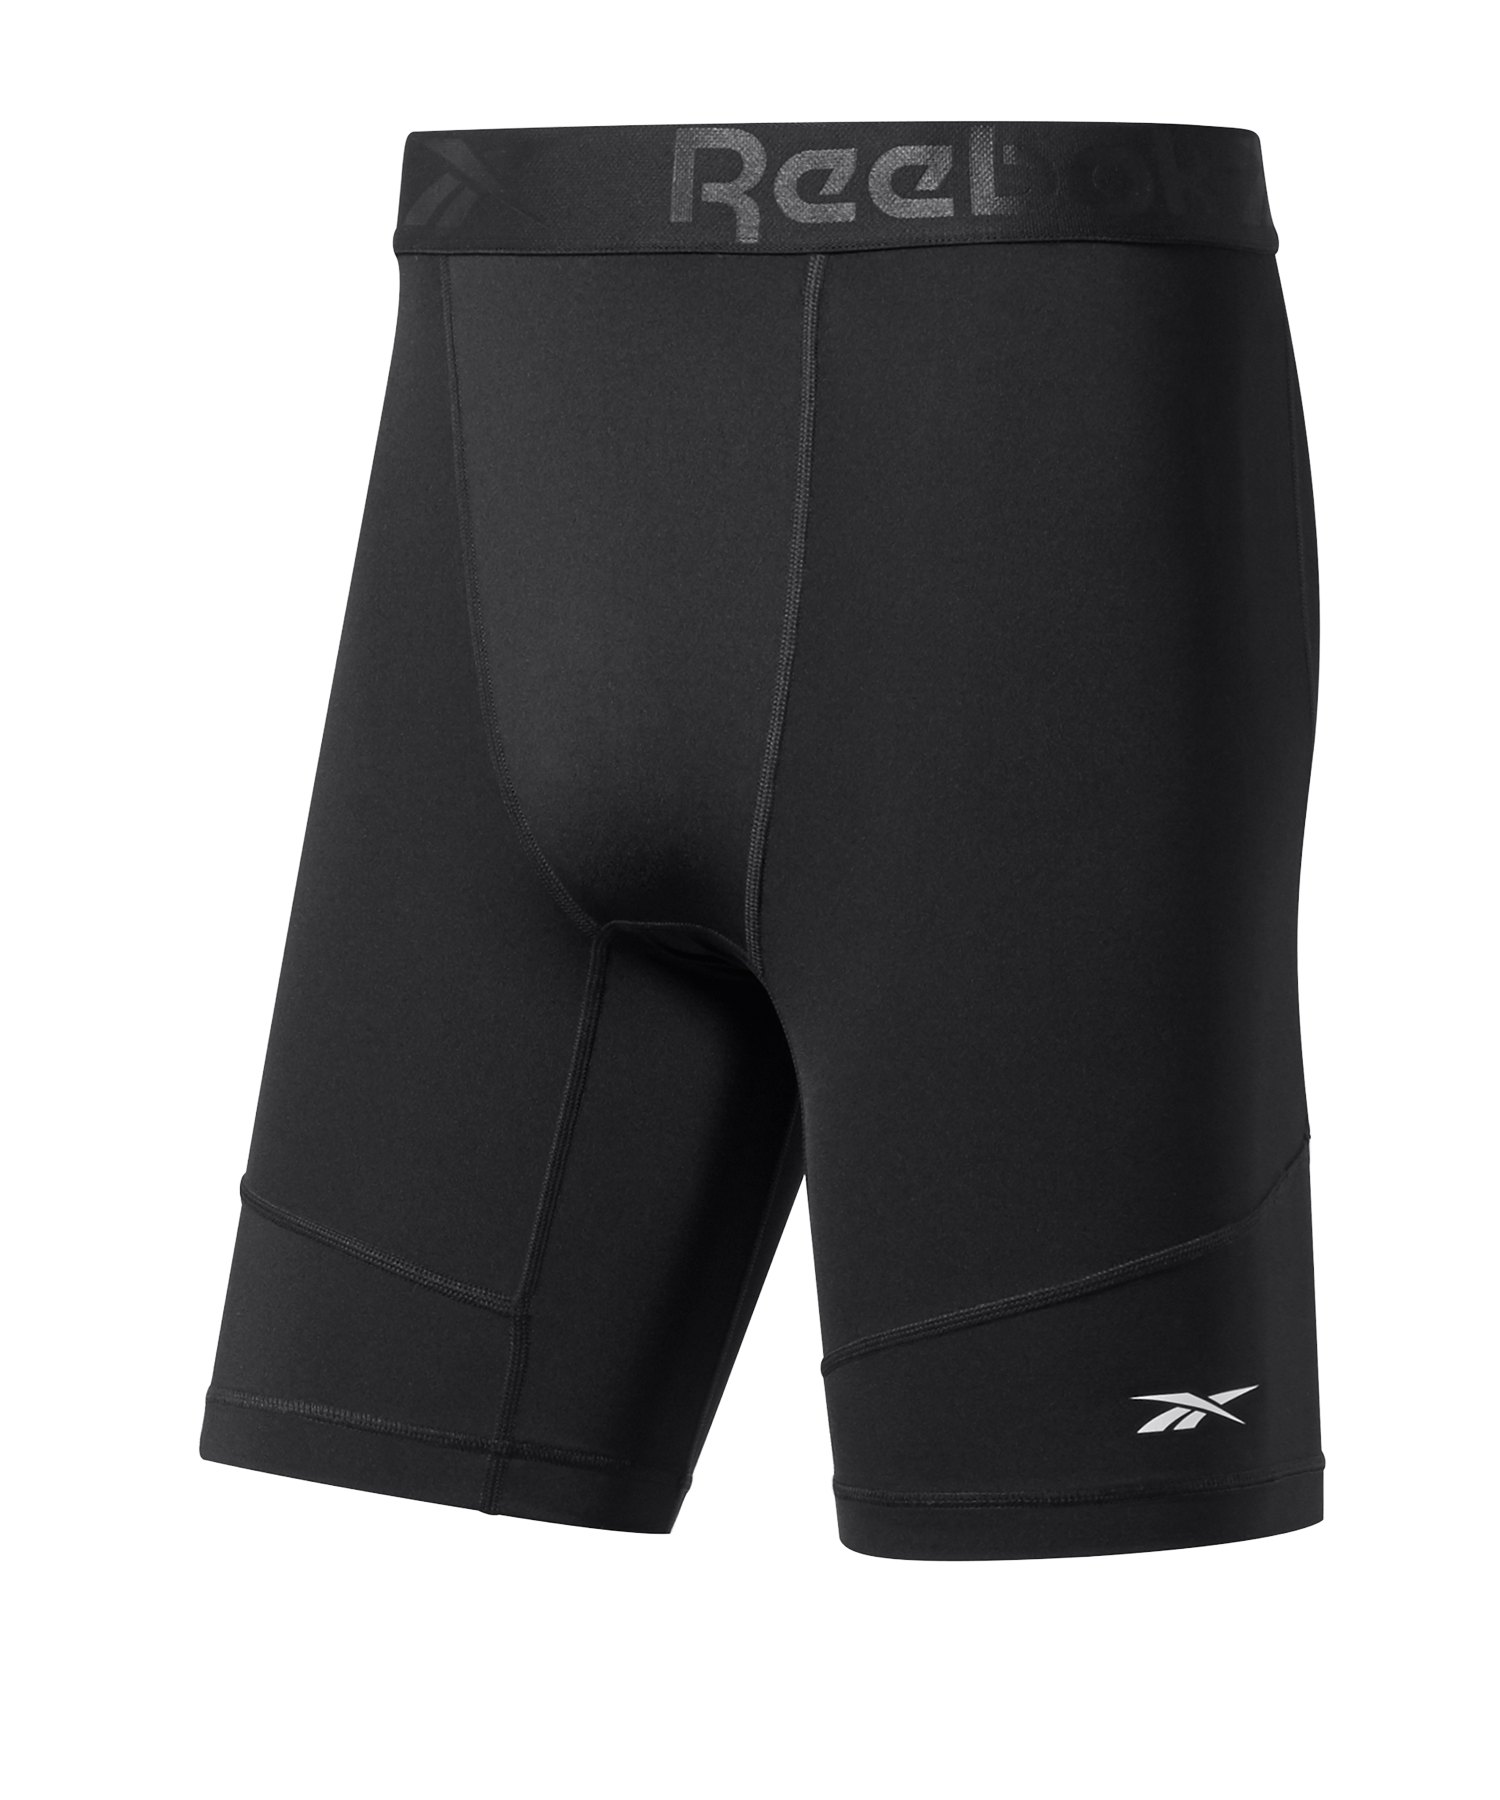 Reebok Workout Ready Compression Short Schwarz - schwarz